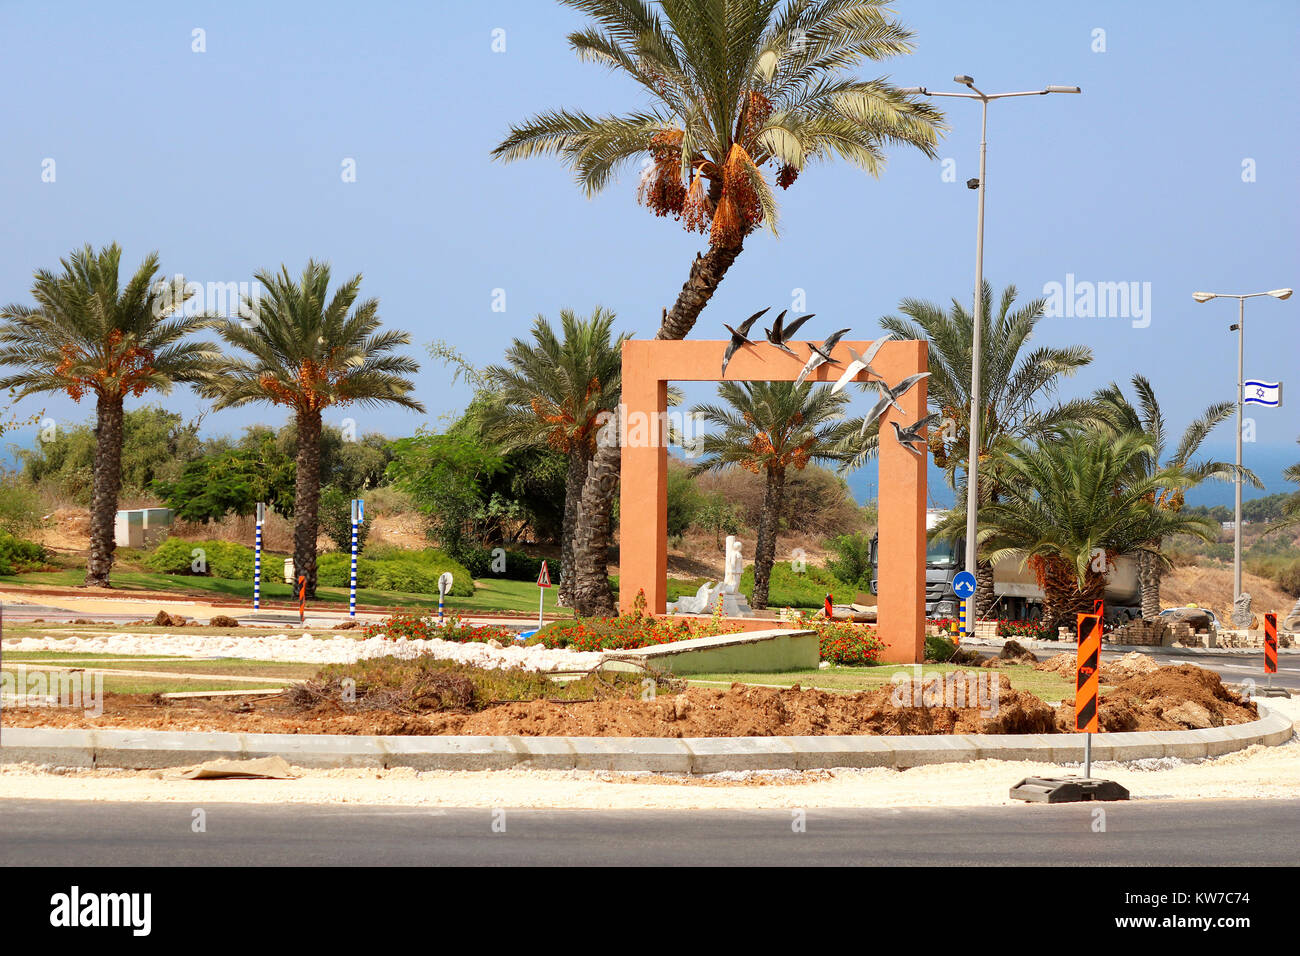 ASHKELON, ISRAEL - SEPTEMBER19, 2017: Circular crossroads decorated with swallows in the city of Ashkelon - Stock Image